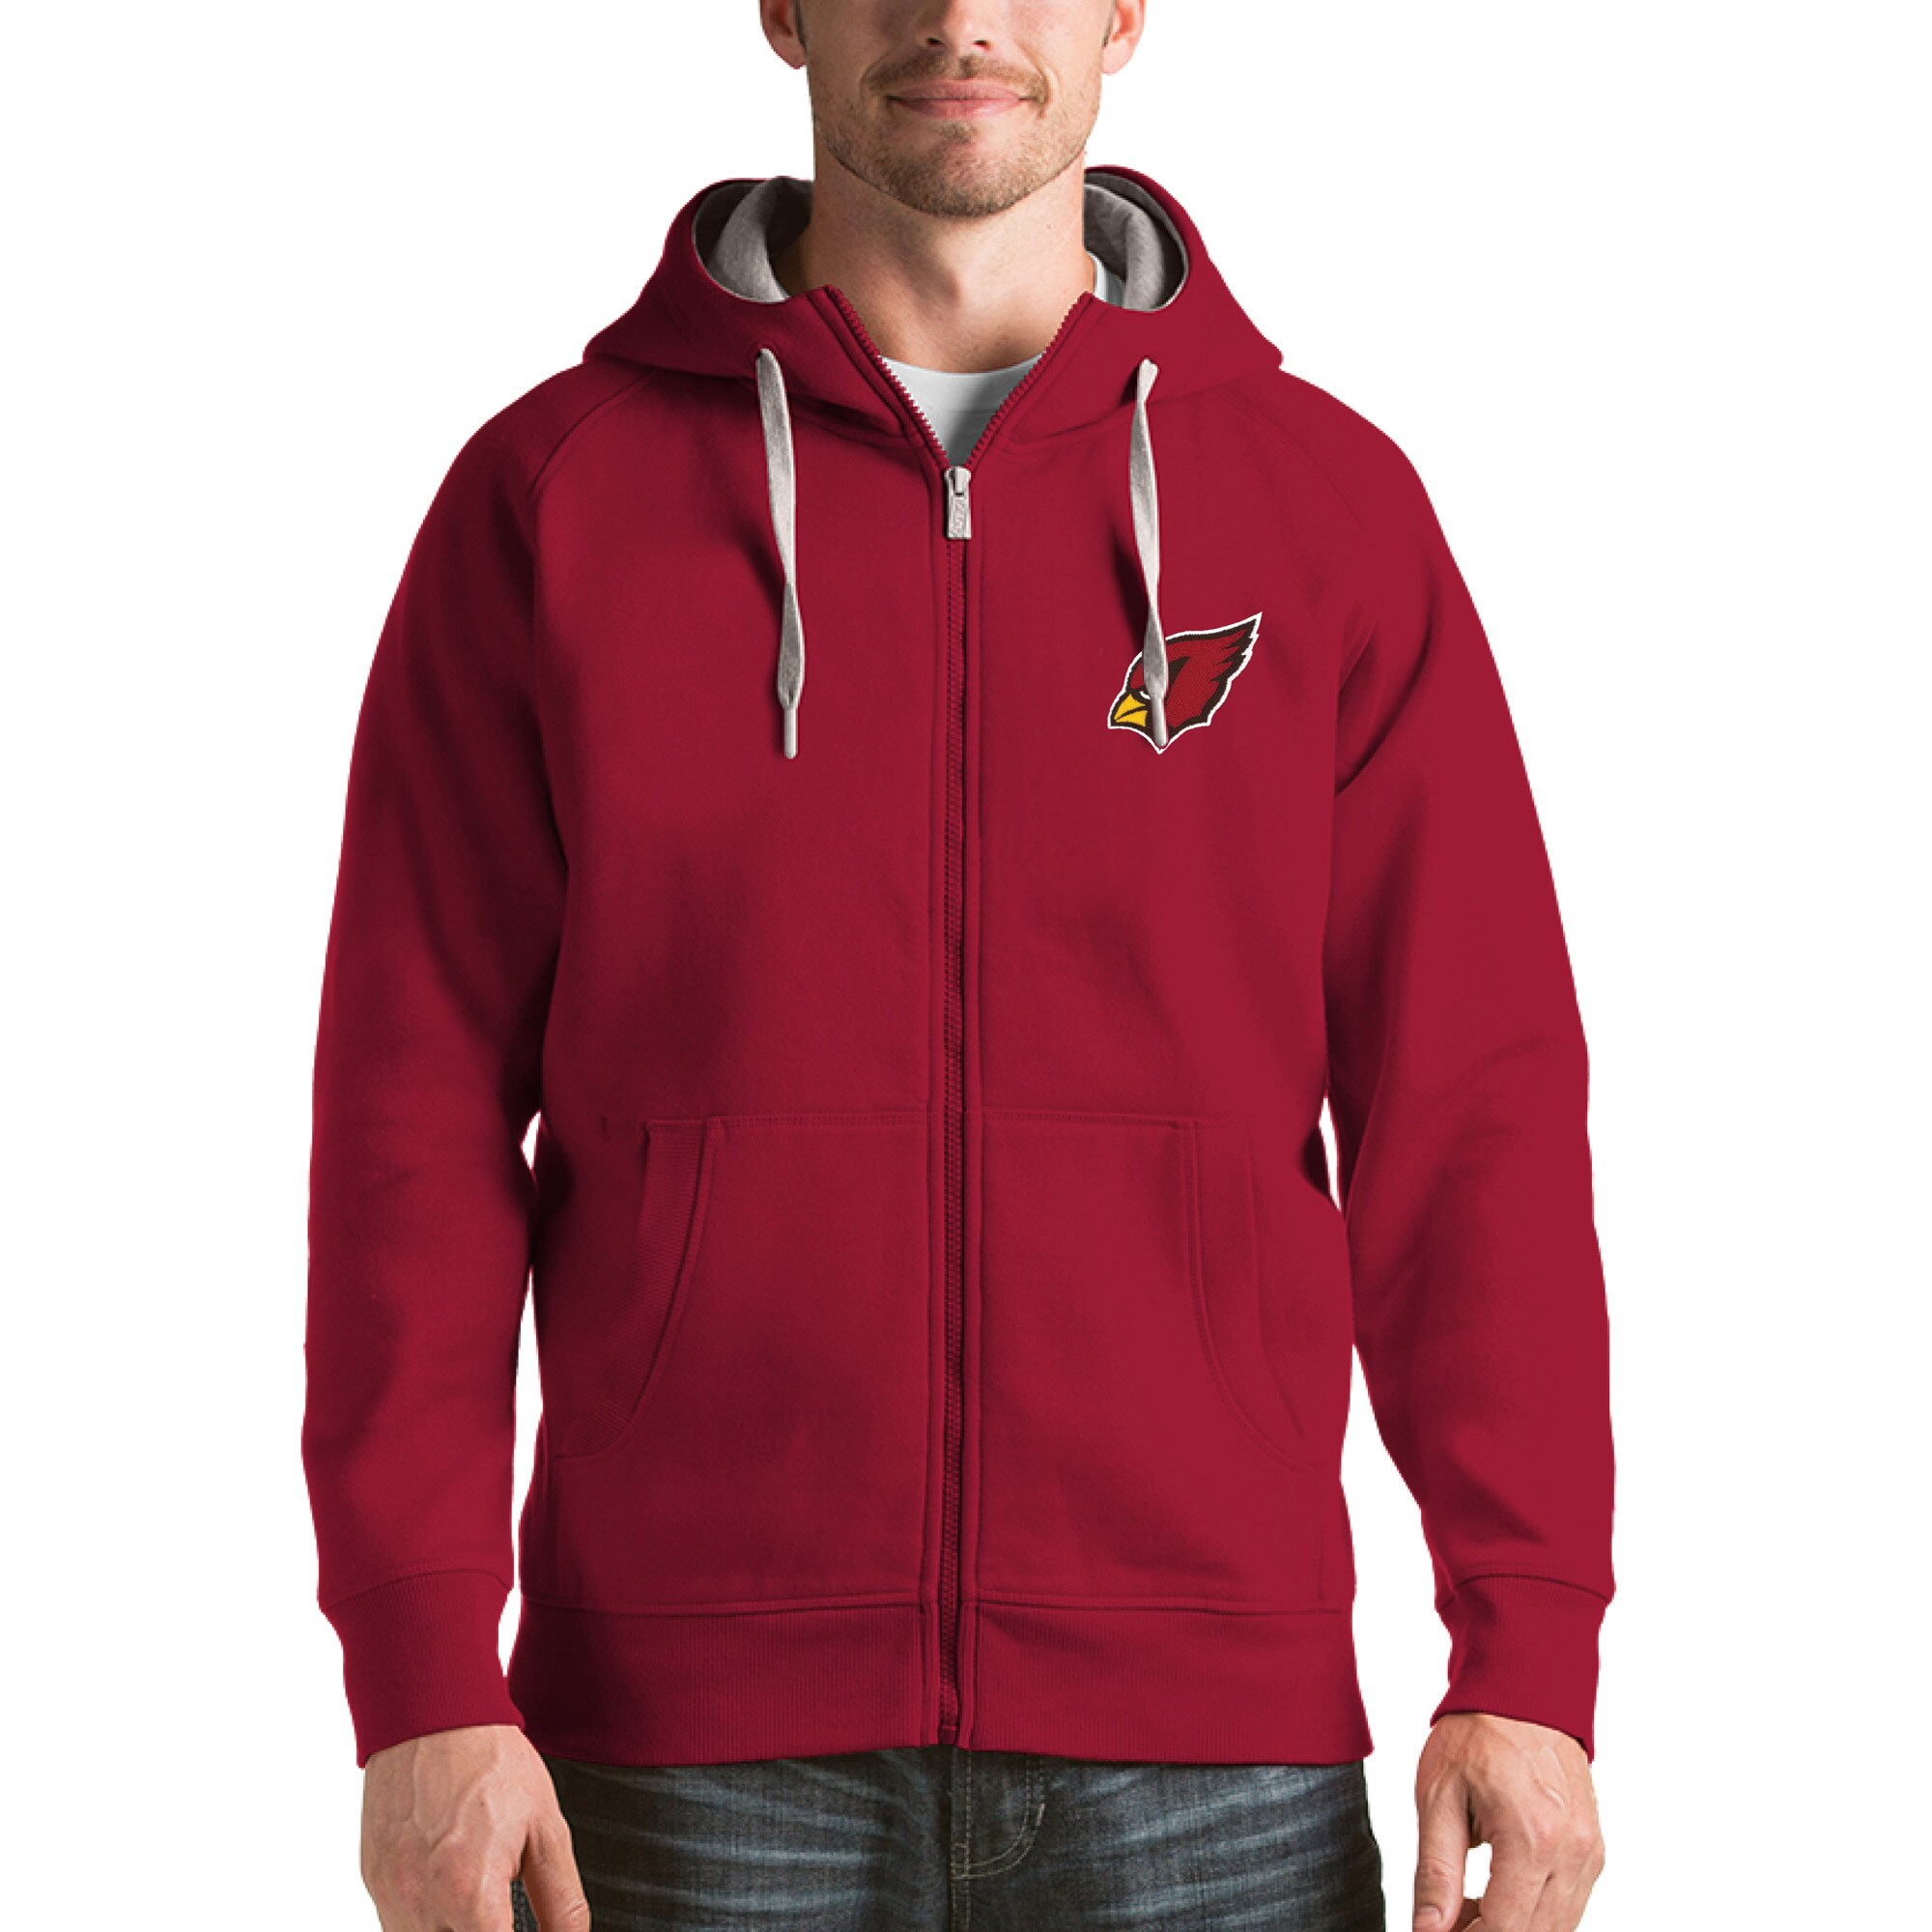 Arizona Cardinals Antigua Victory Full-Zip Hoodie - Cardinal